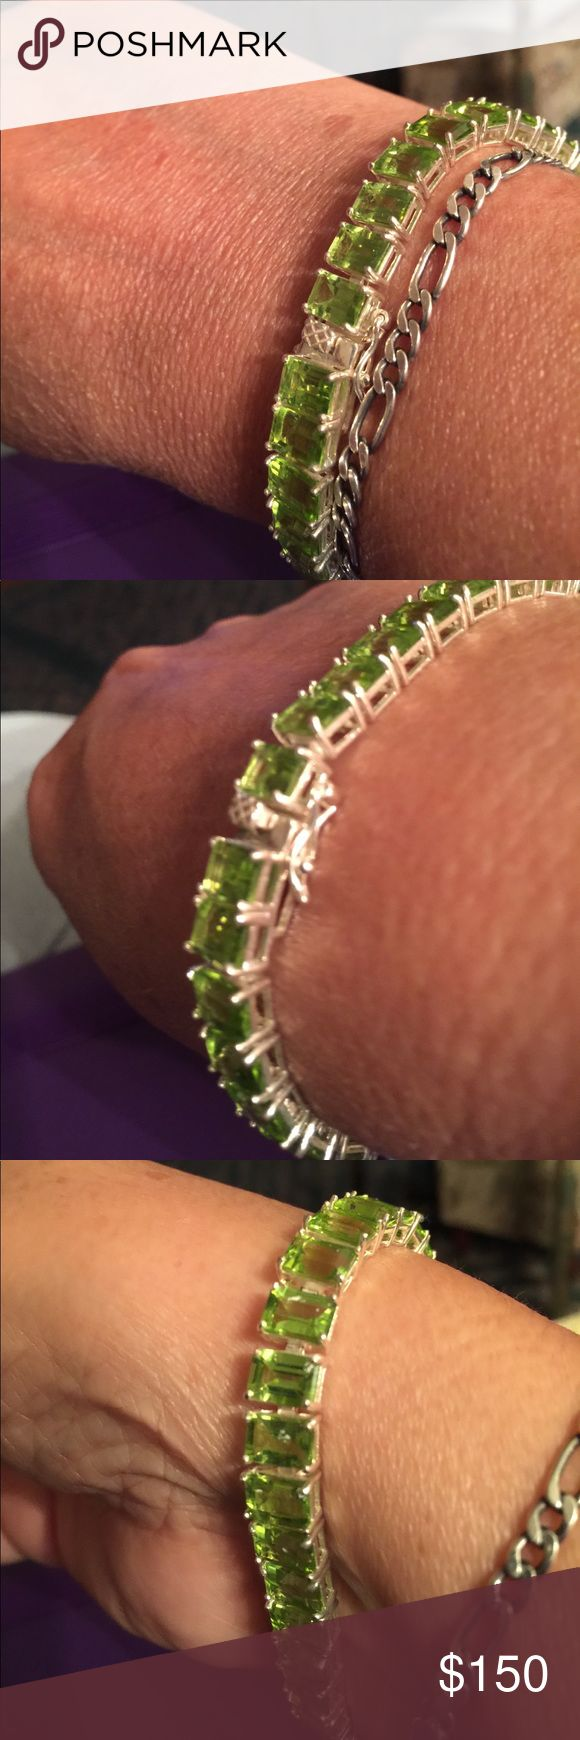 Peridot stamped silver REAL 8 inch with safety latches. Stones about 1 carat each Jewelry Bracelets